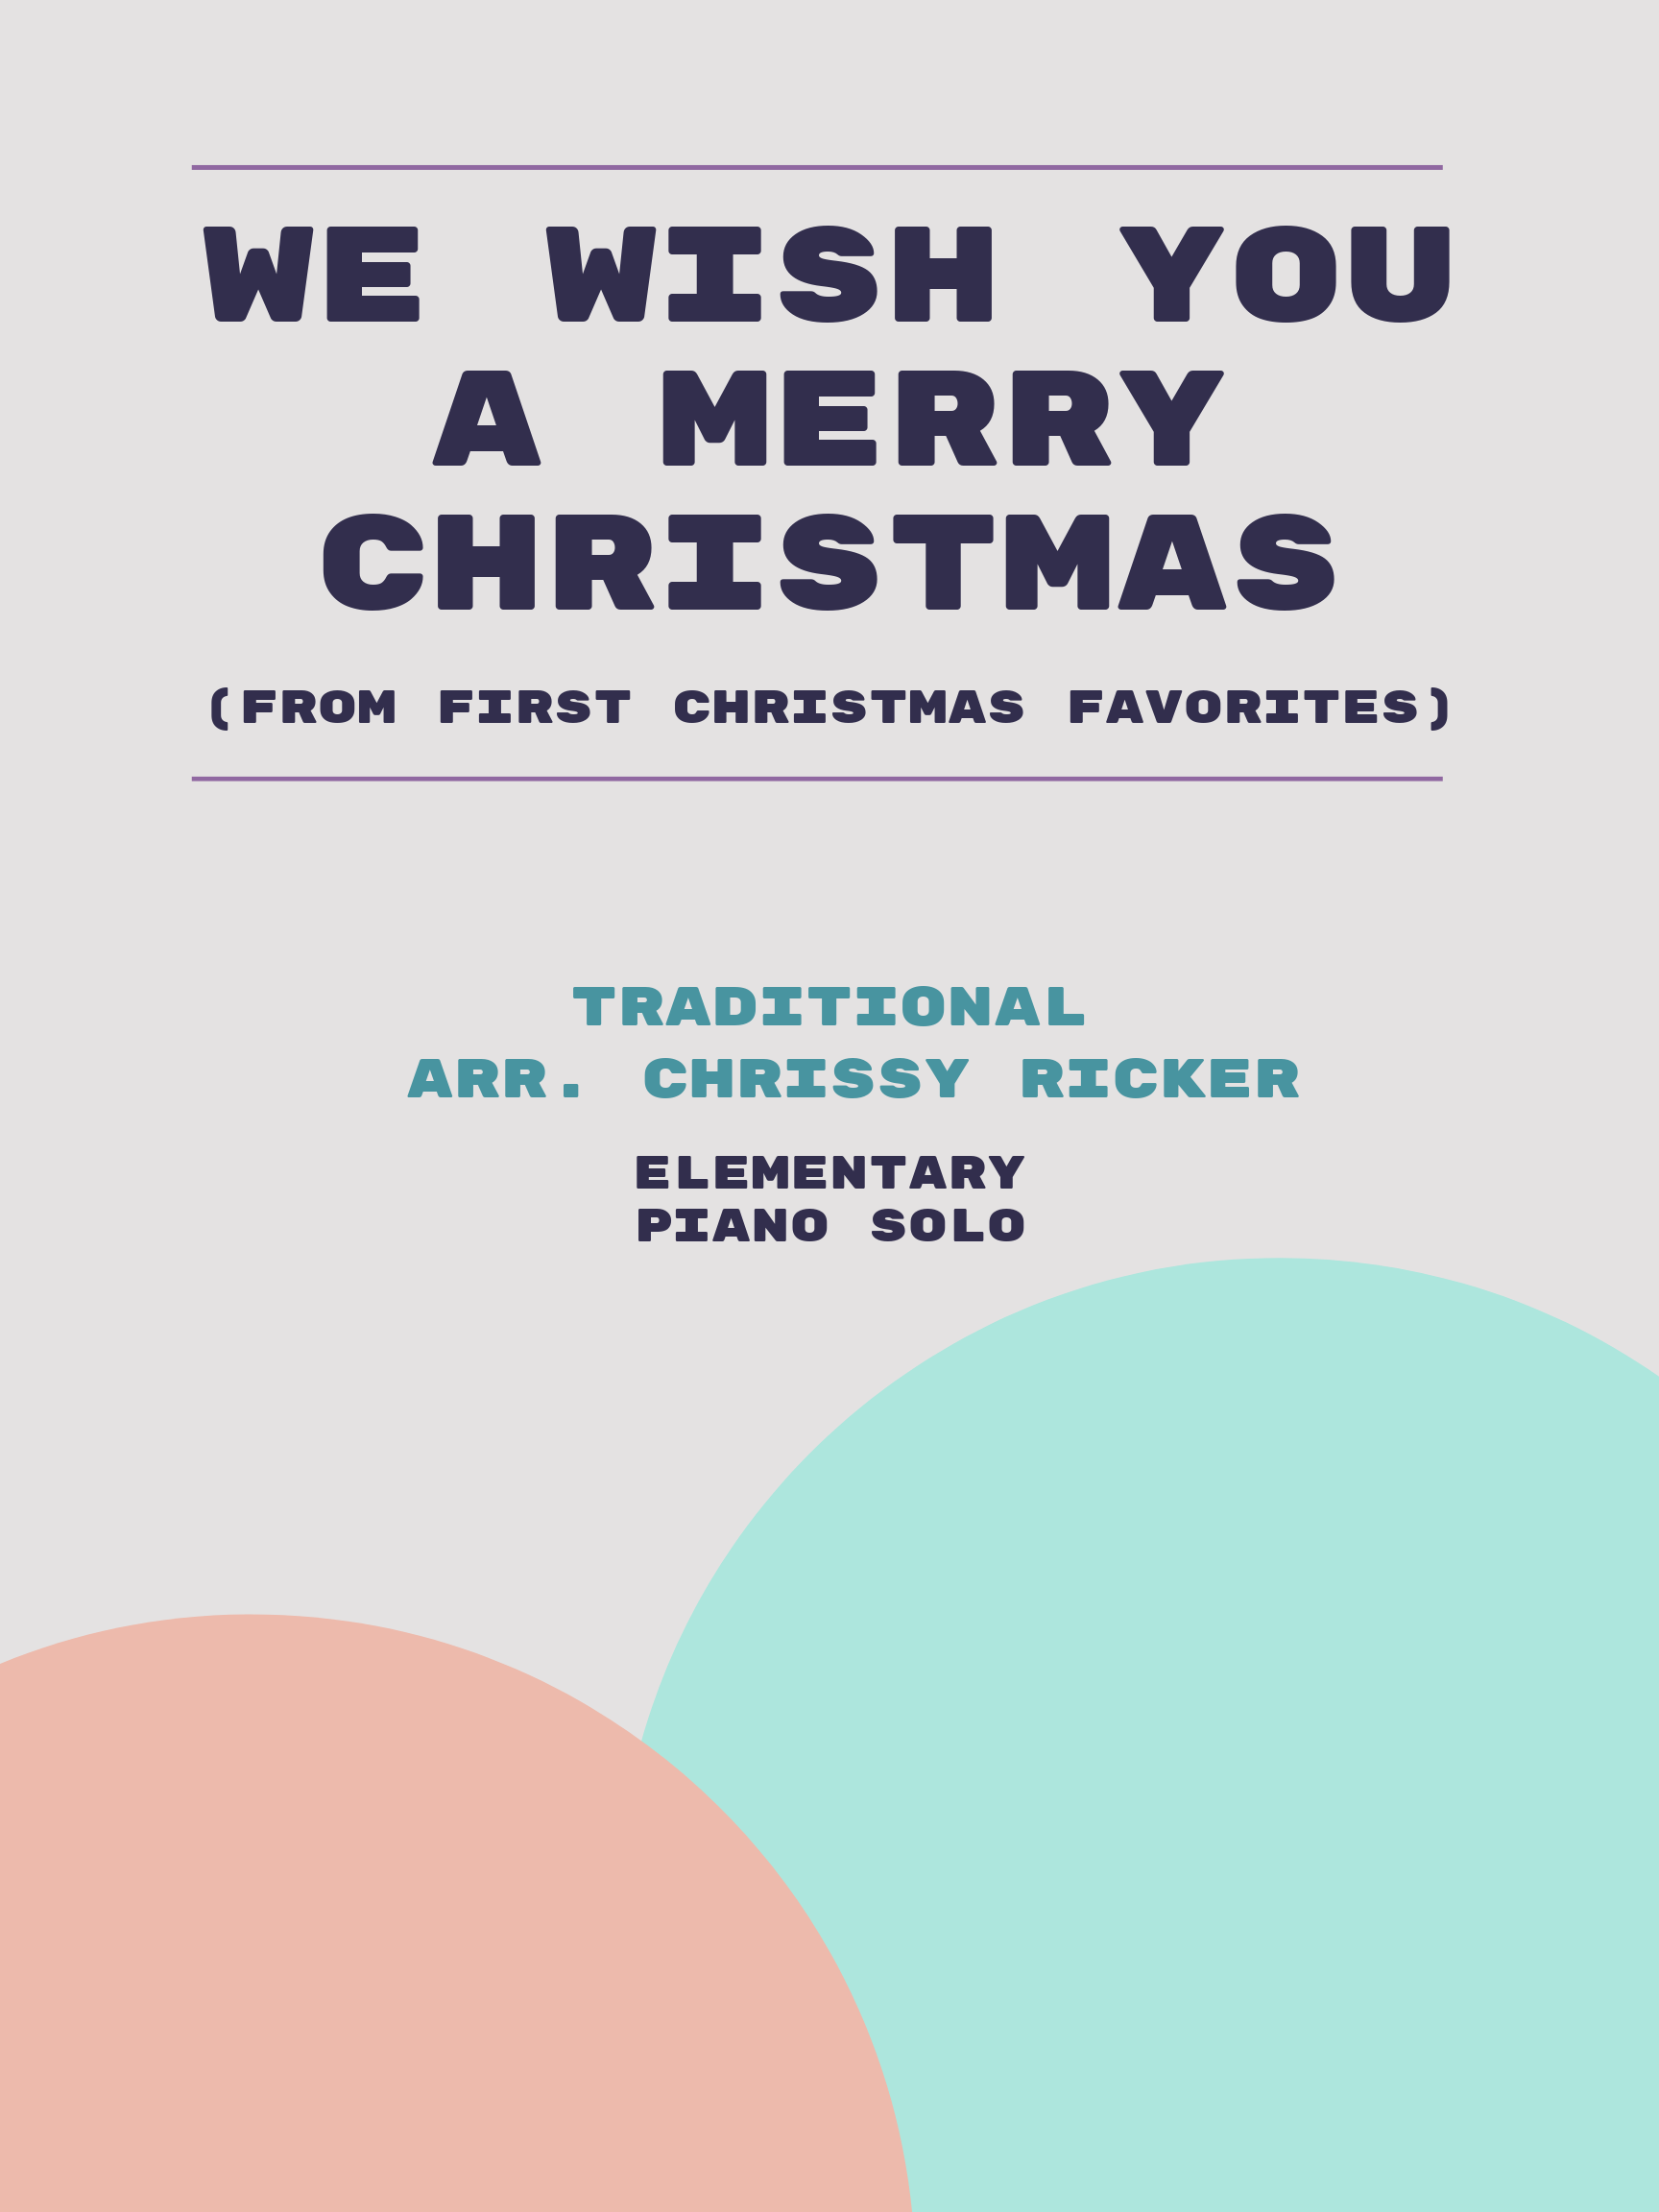 We Wish You a Merry Christmas by Traditional